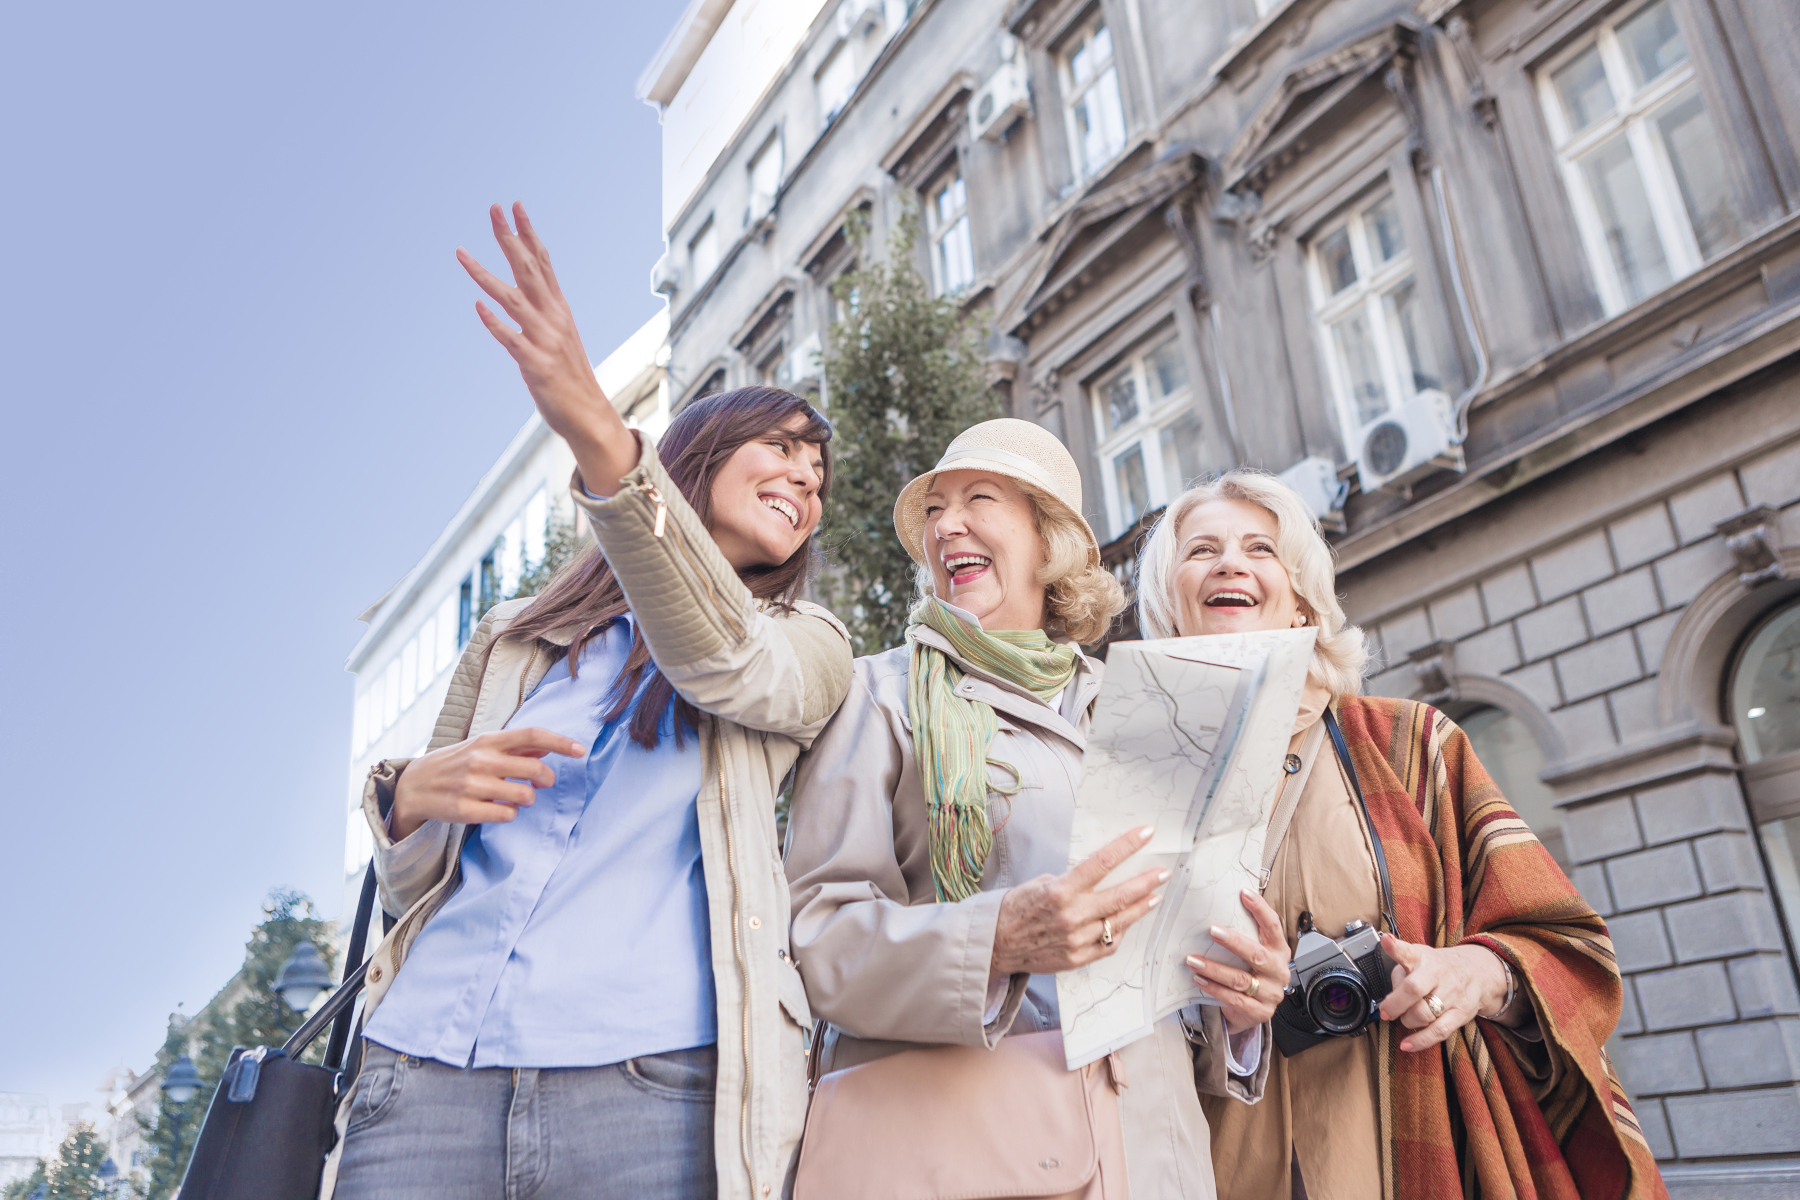 Two senior ladies, tourist traveling, exploring the city, asking young woman, passenger for directions, browsing city map, discovering landmarks.